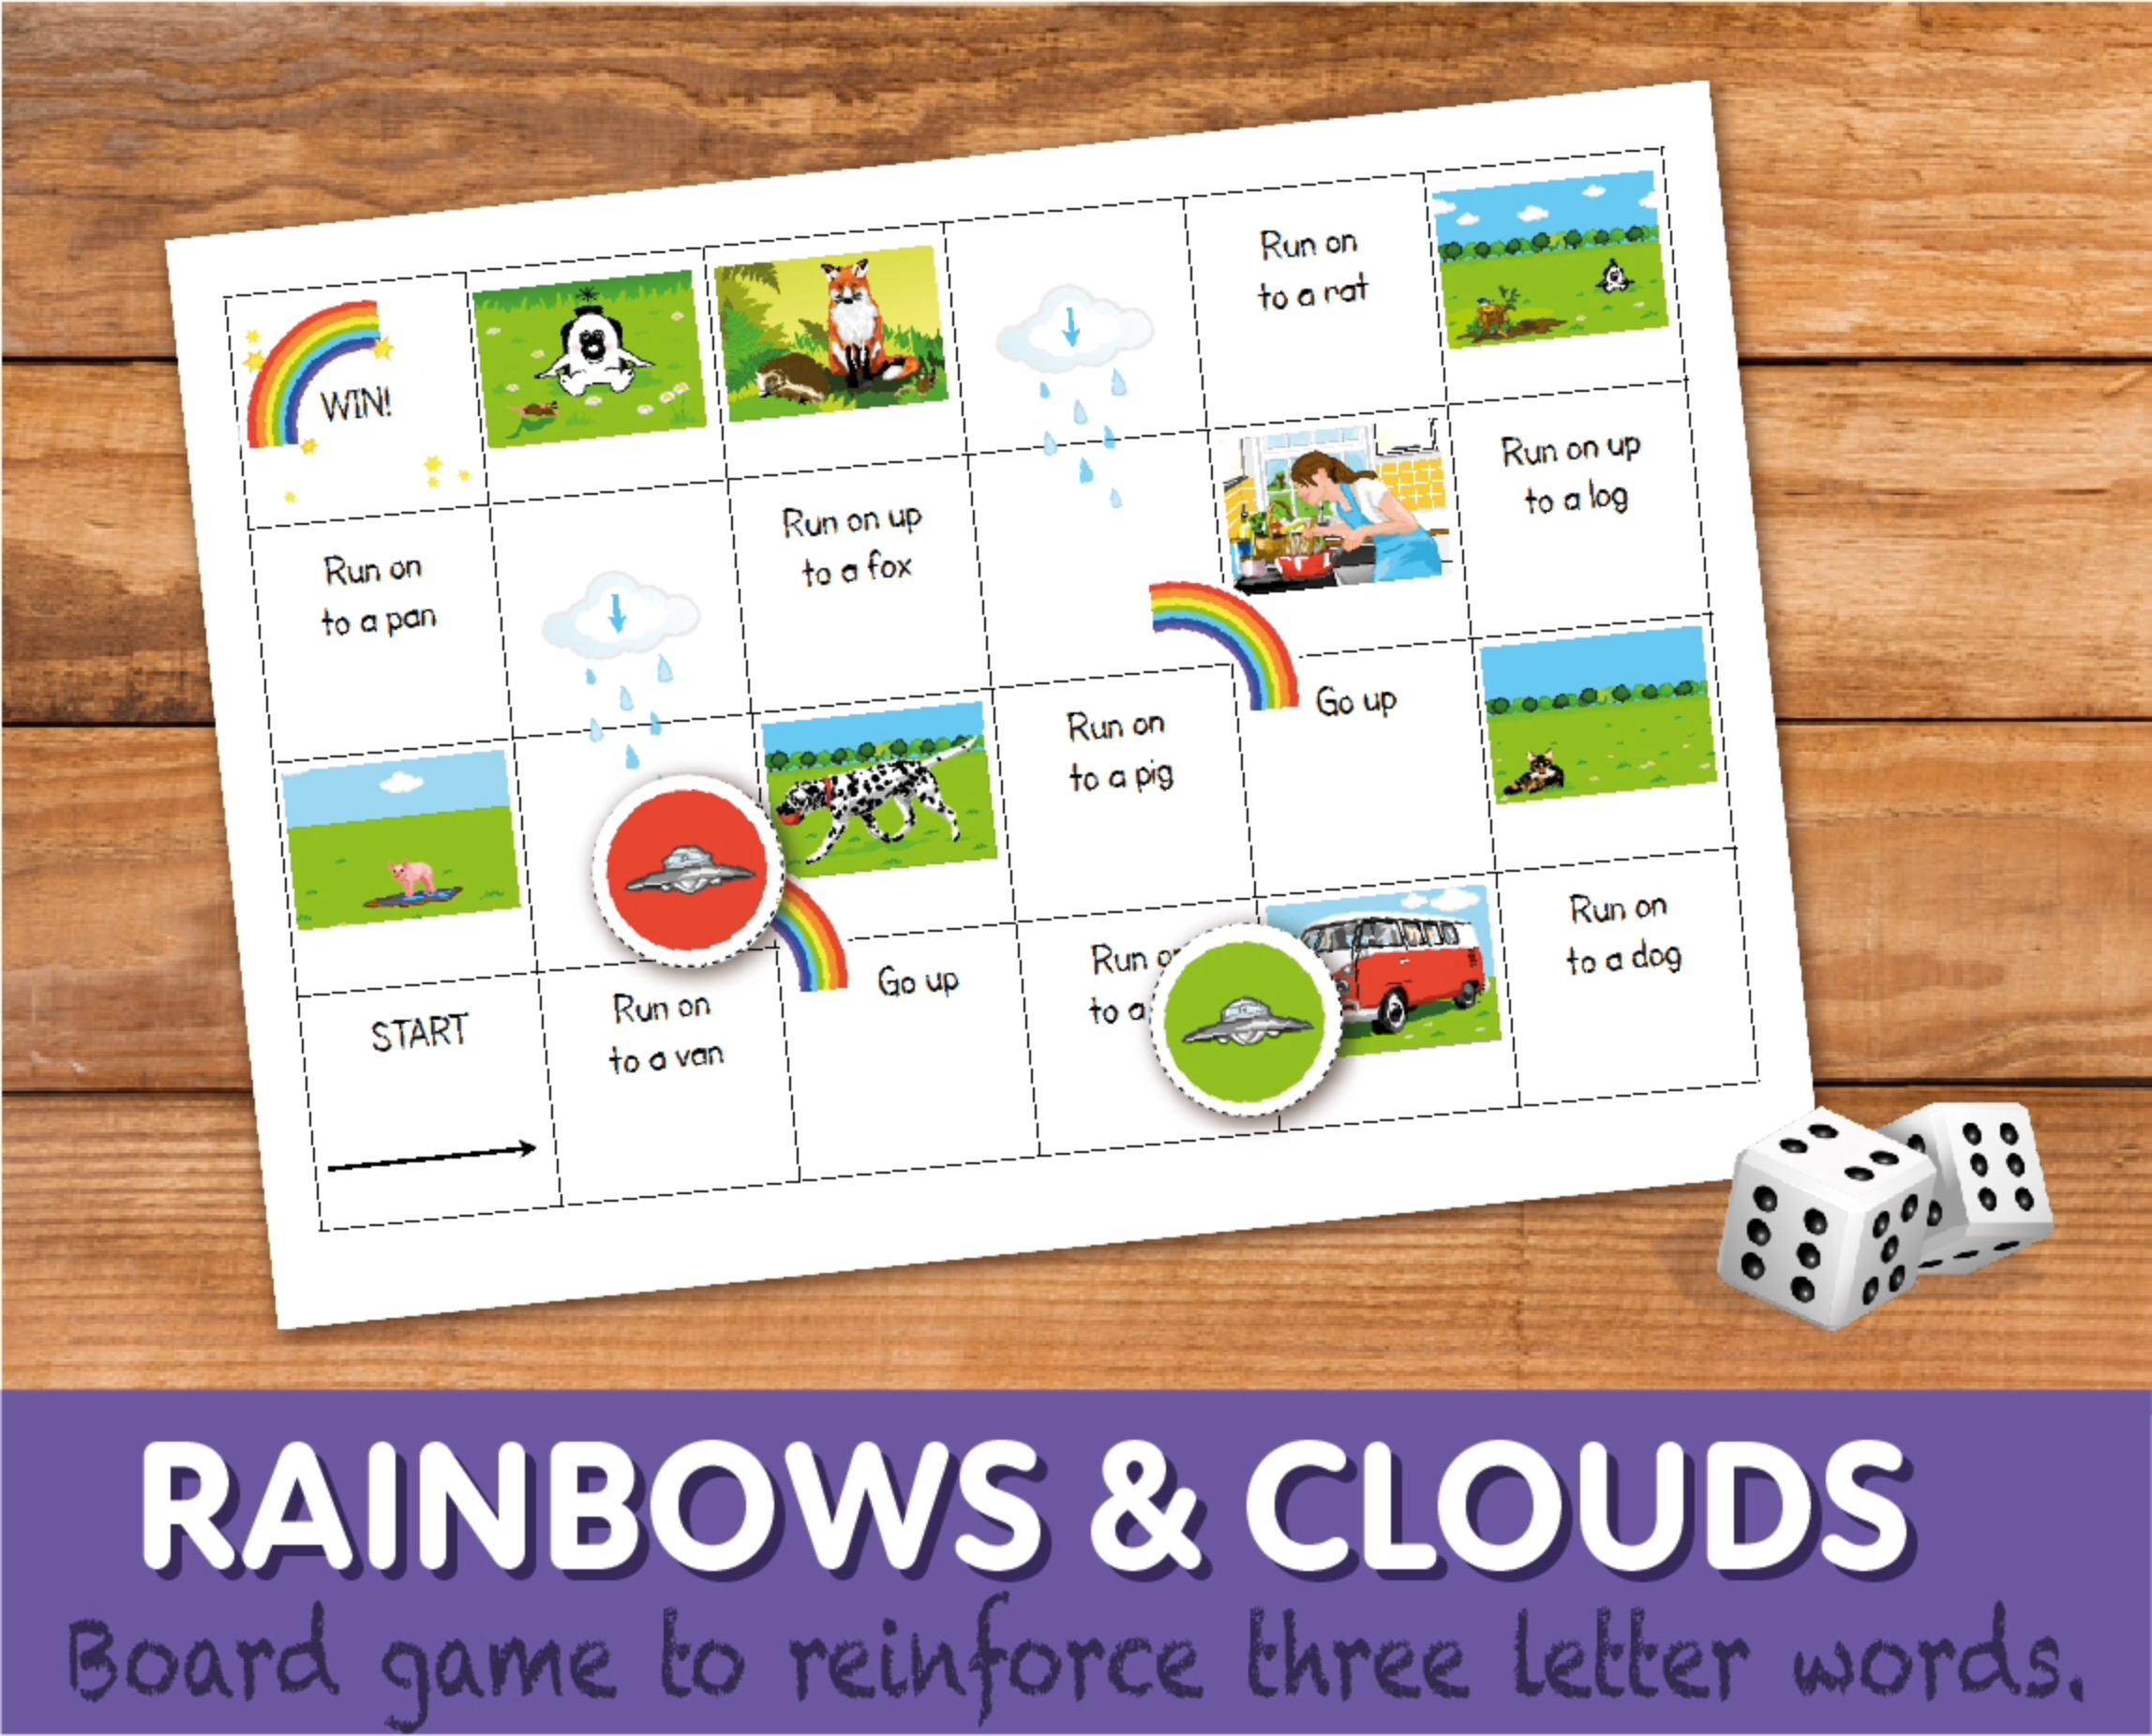 Rainbows And Clouds Snakes And Ladders (4-7 years)